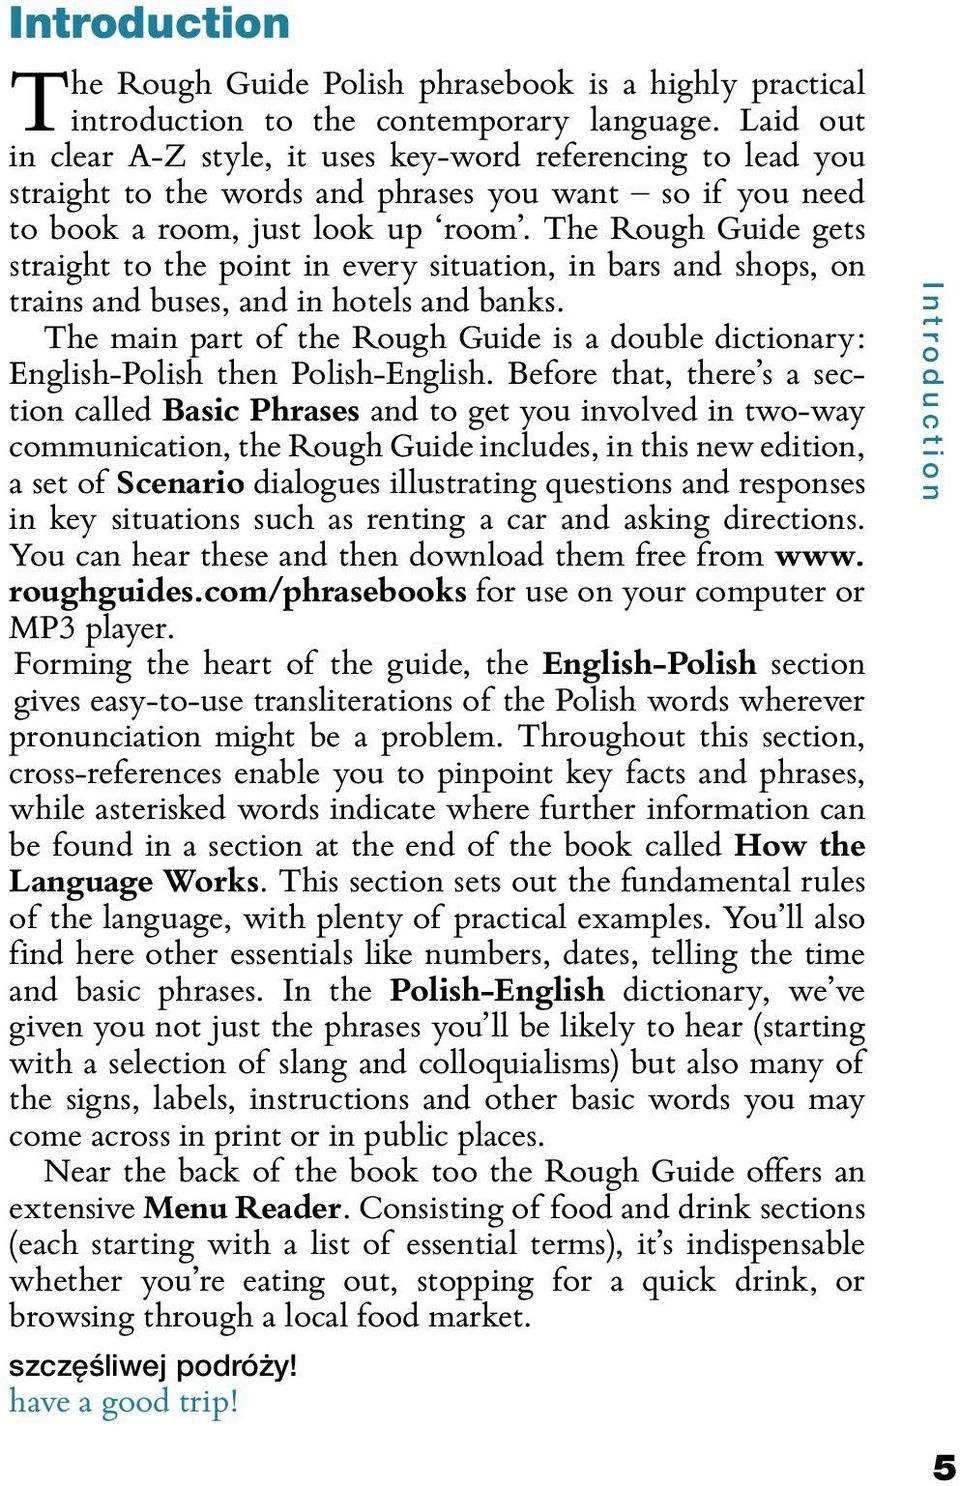 The Rough Guide gets straight to the point in every situation, in bars and shops, on trains and buses, and in hotels and banks.